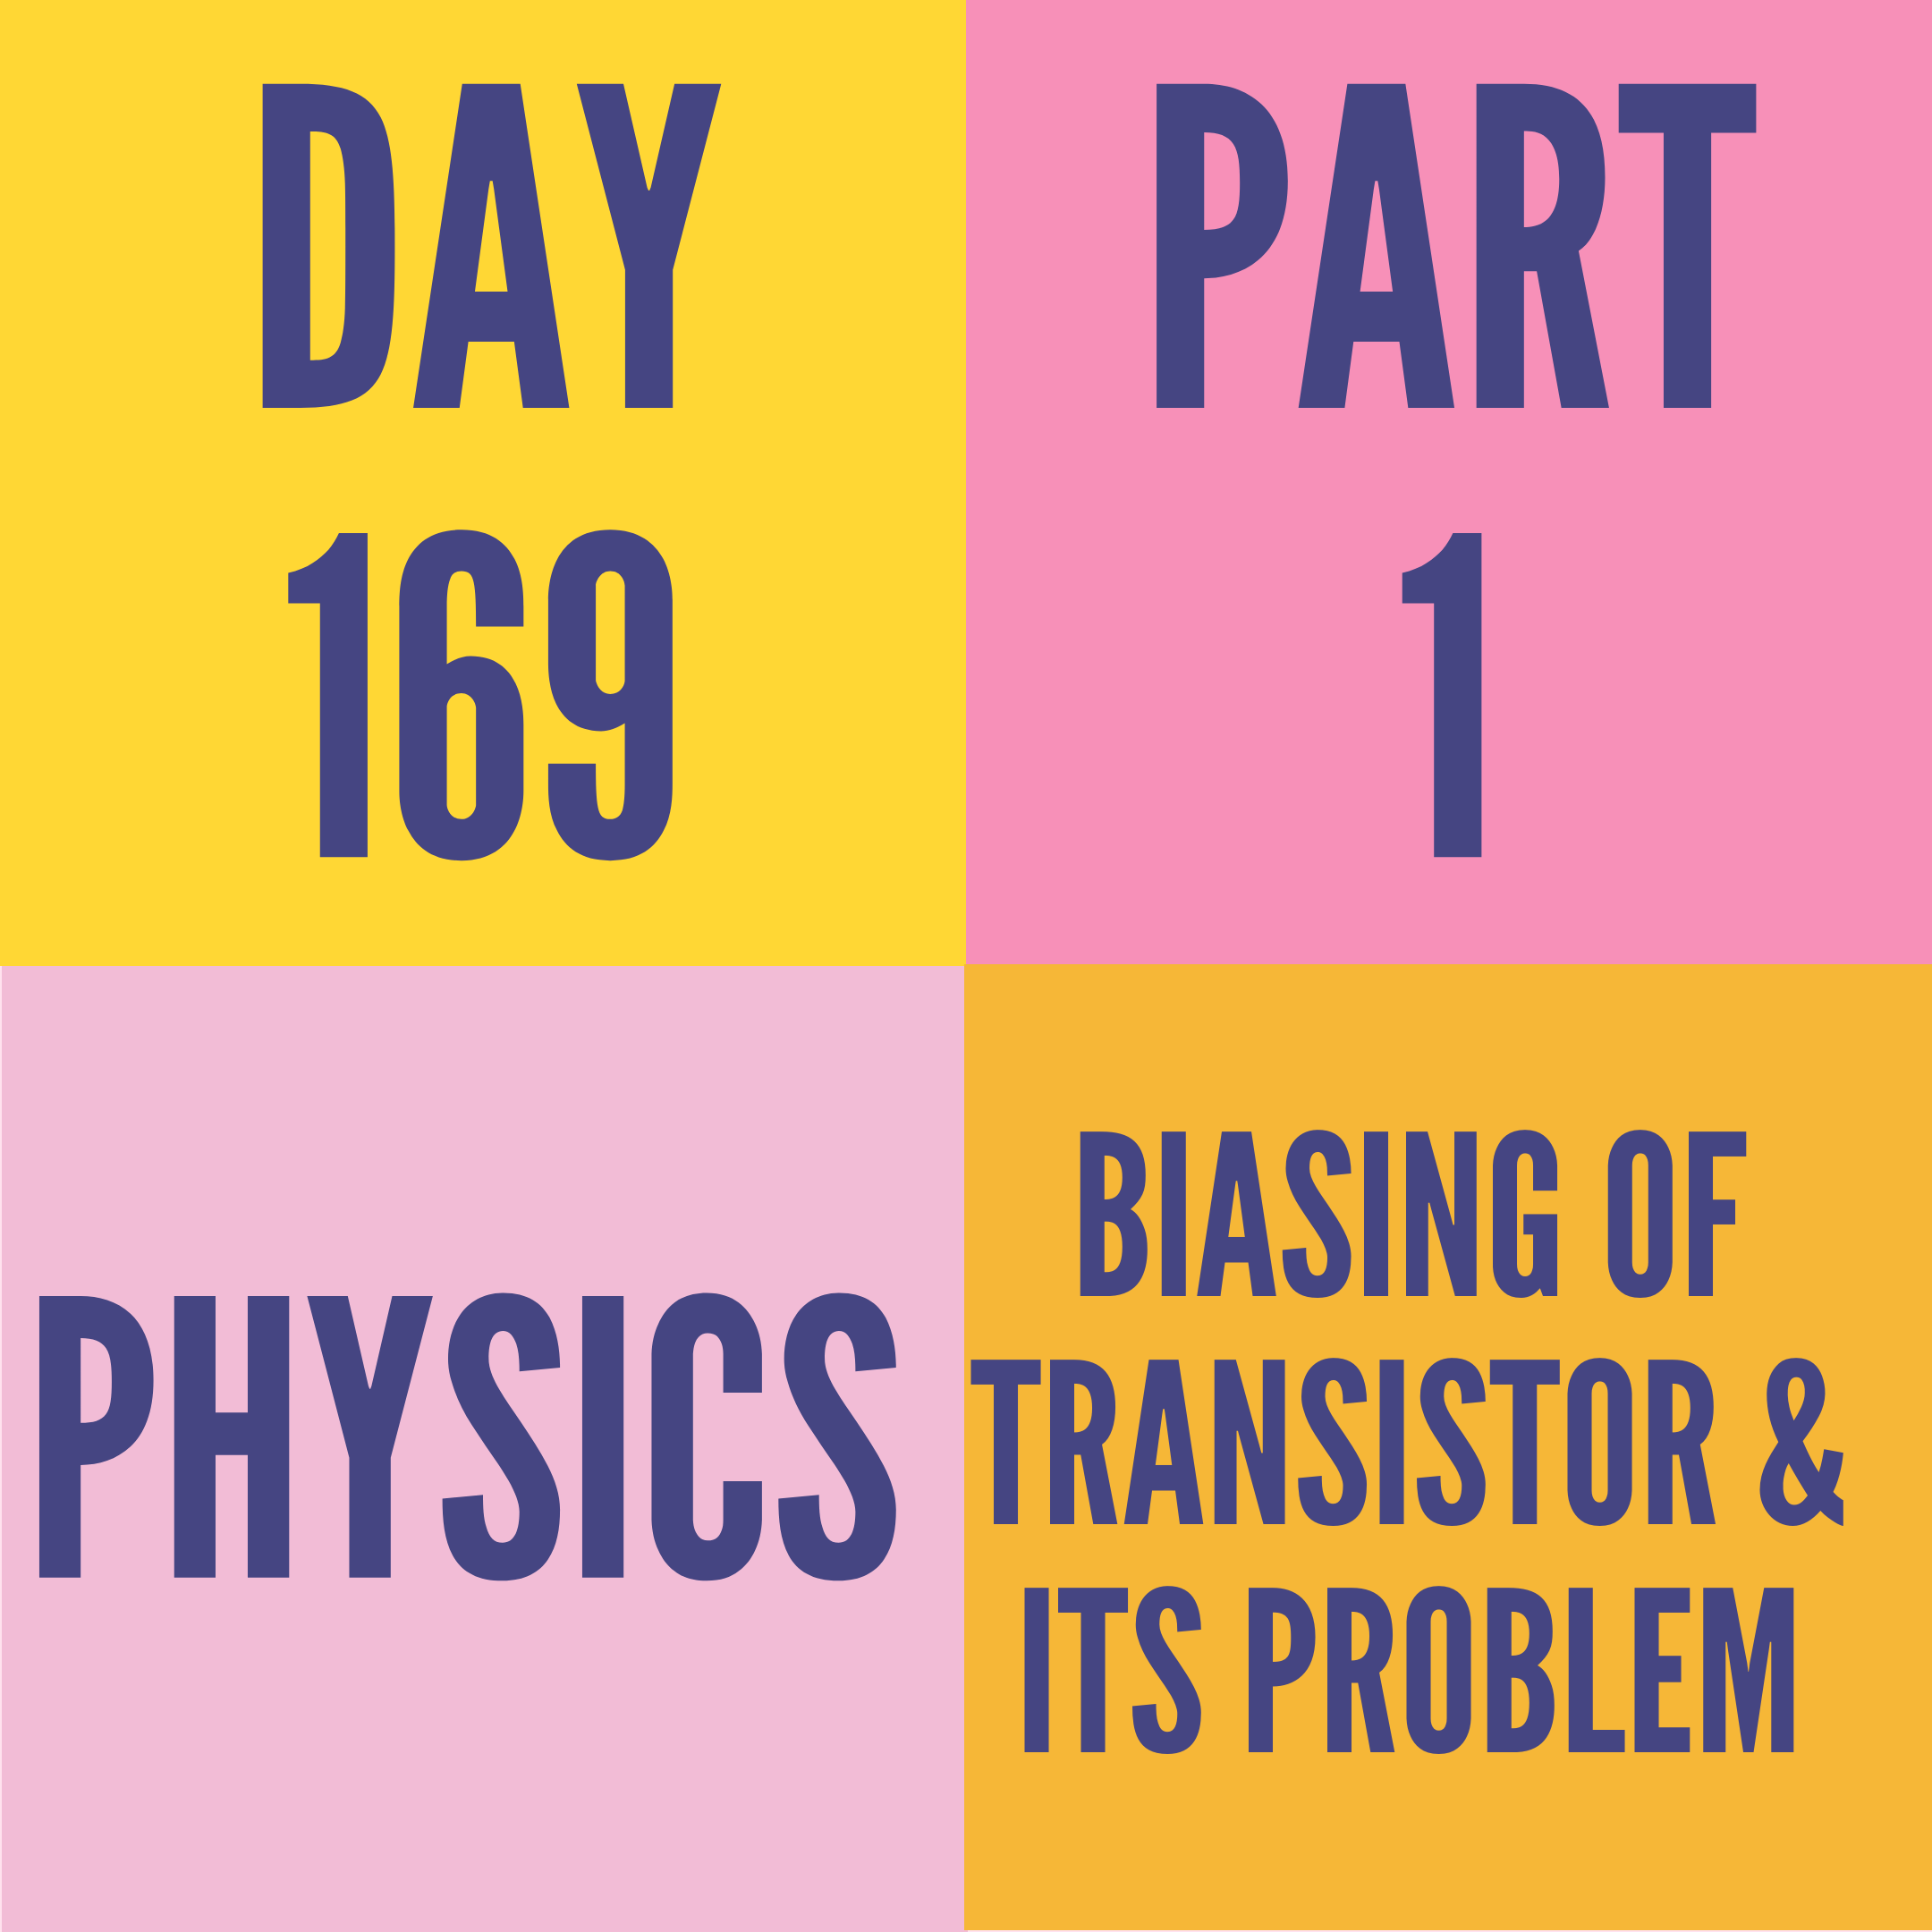 DAY-169 PART-1 BIASING OF TRANSISTOR & ITS PROBLEM